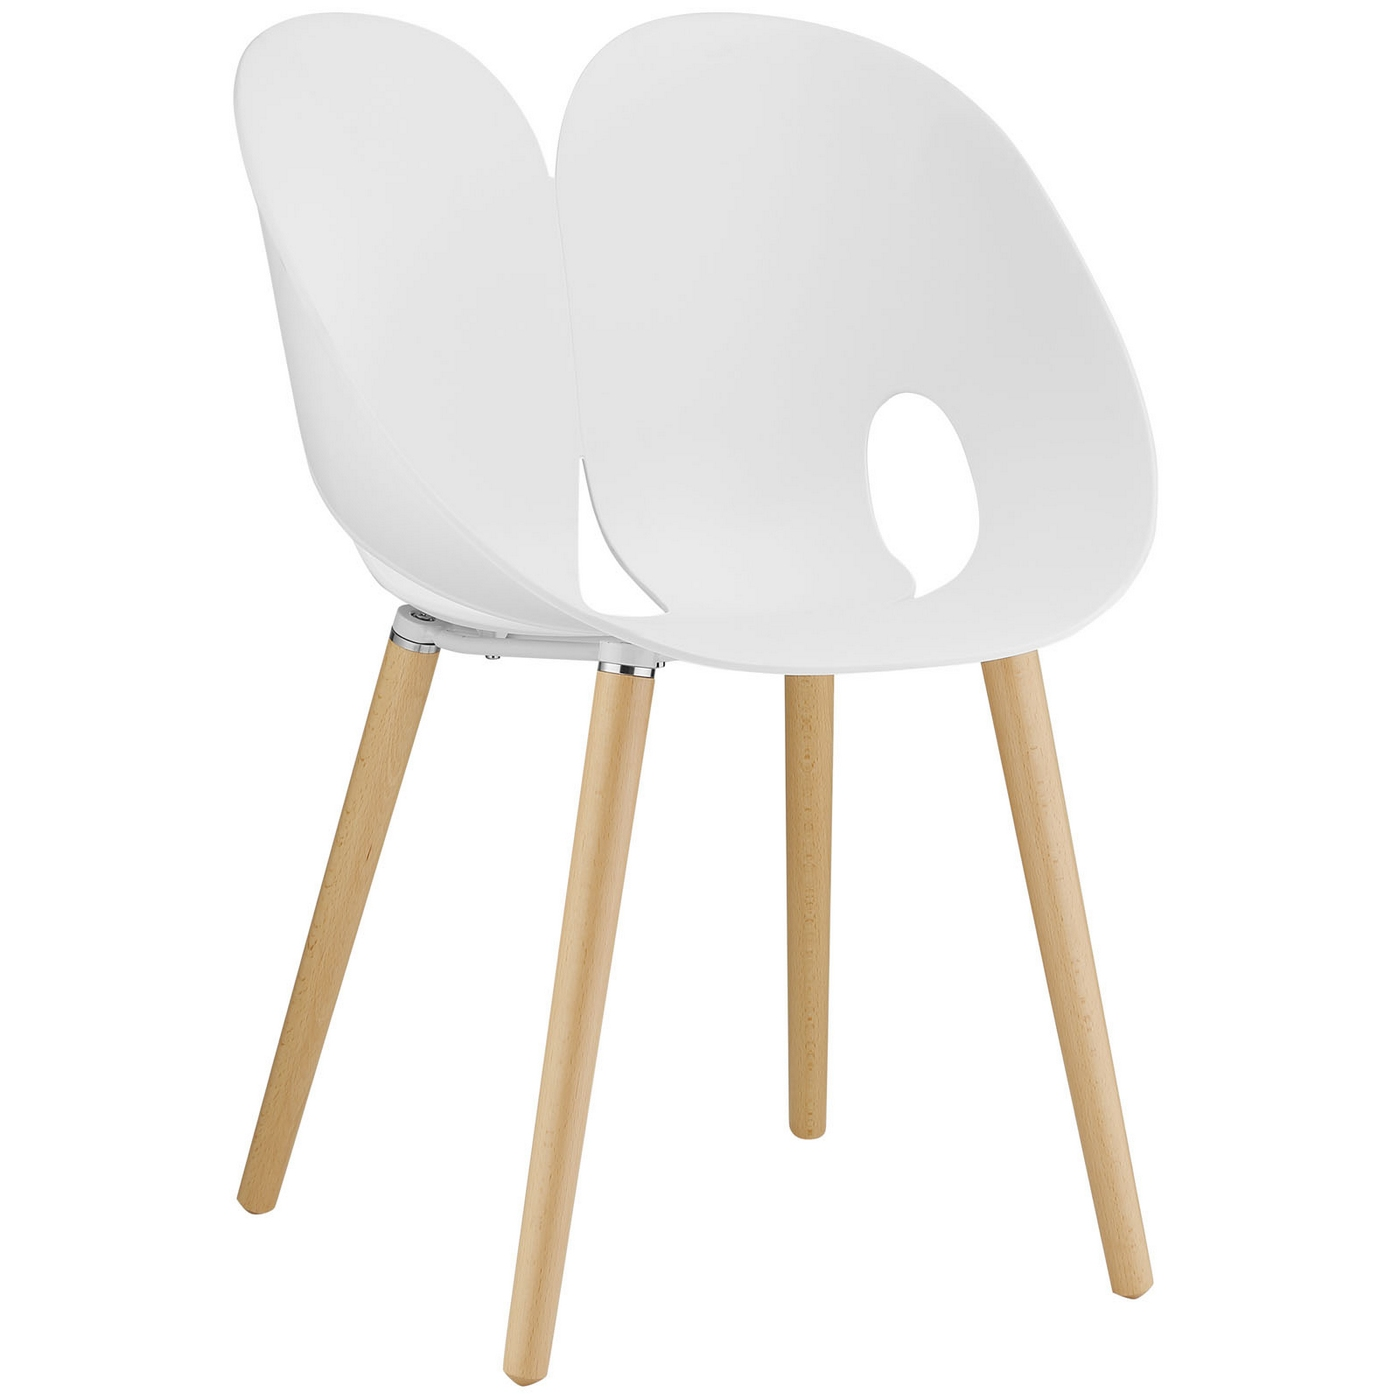 white plastic dining chairs wooden childrens table and envelope winged back side chair with wood